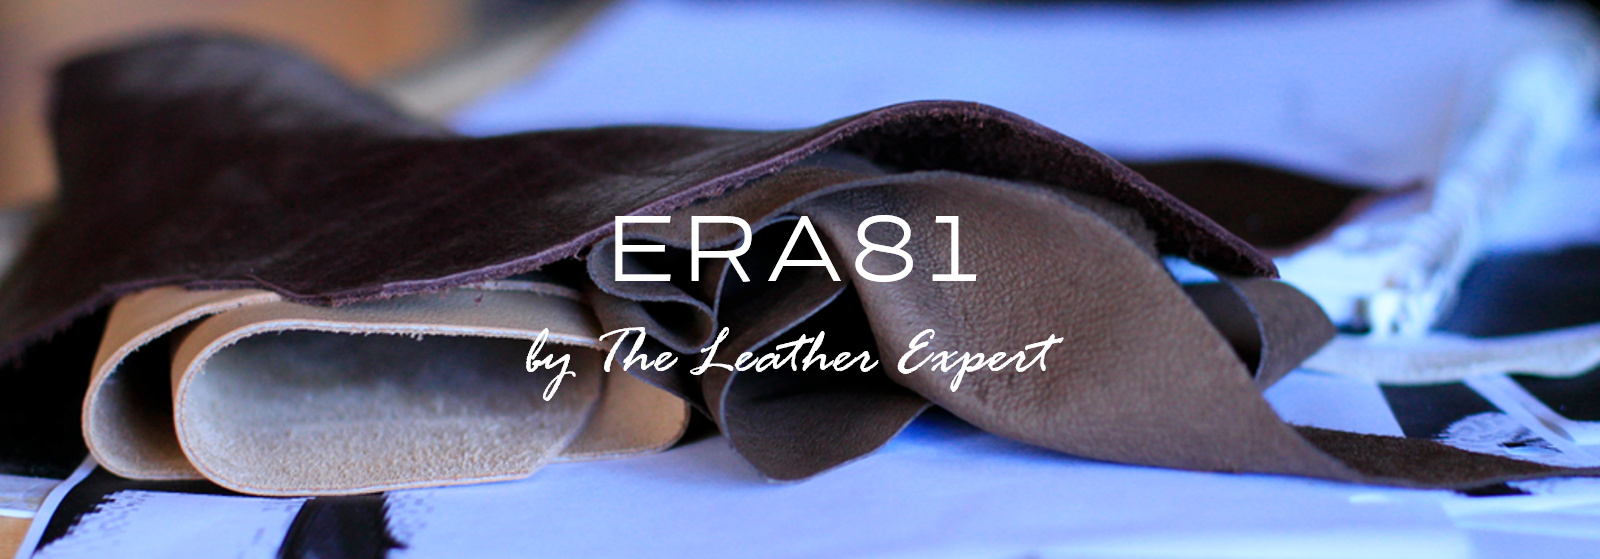 ERA81 by The Leather Expert